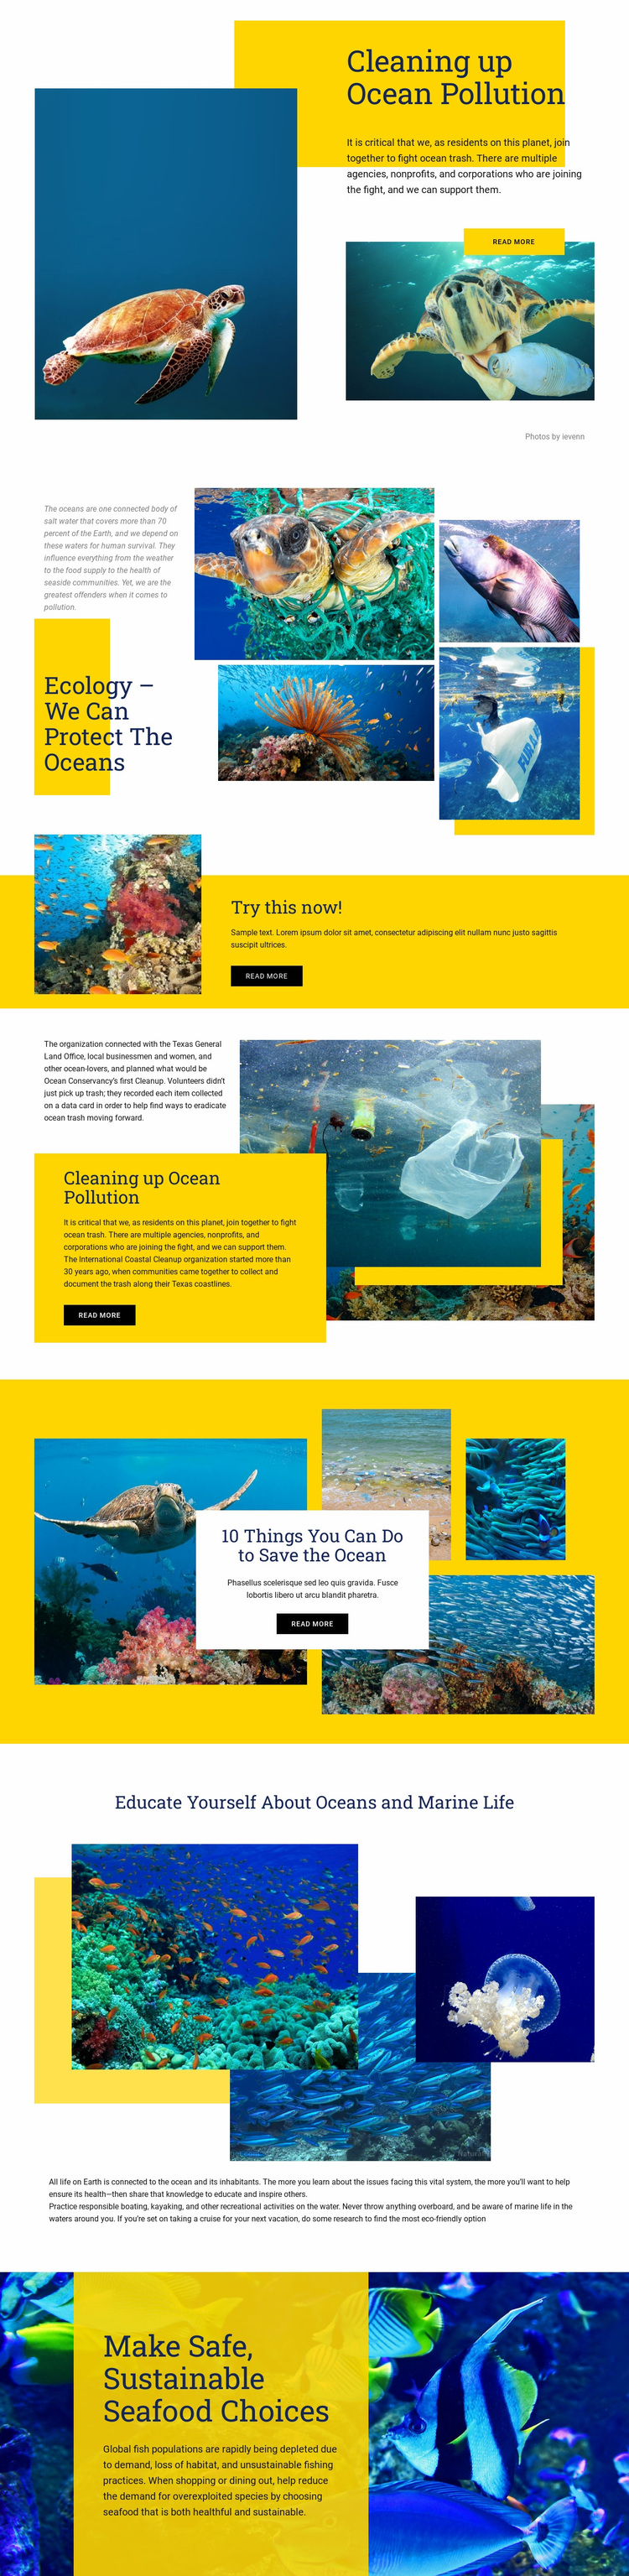 Protect The Oceans Website Design